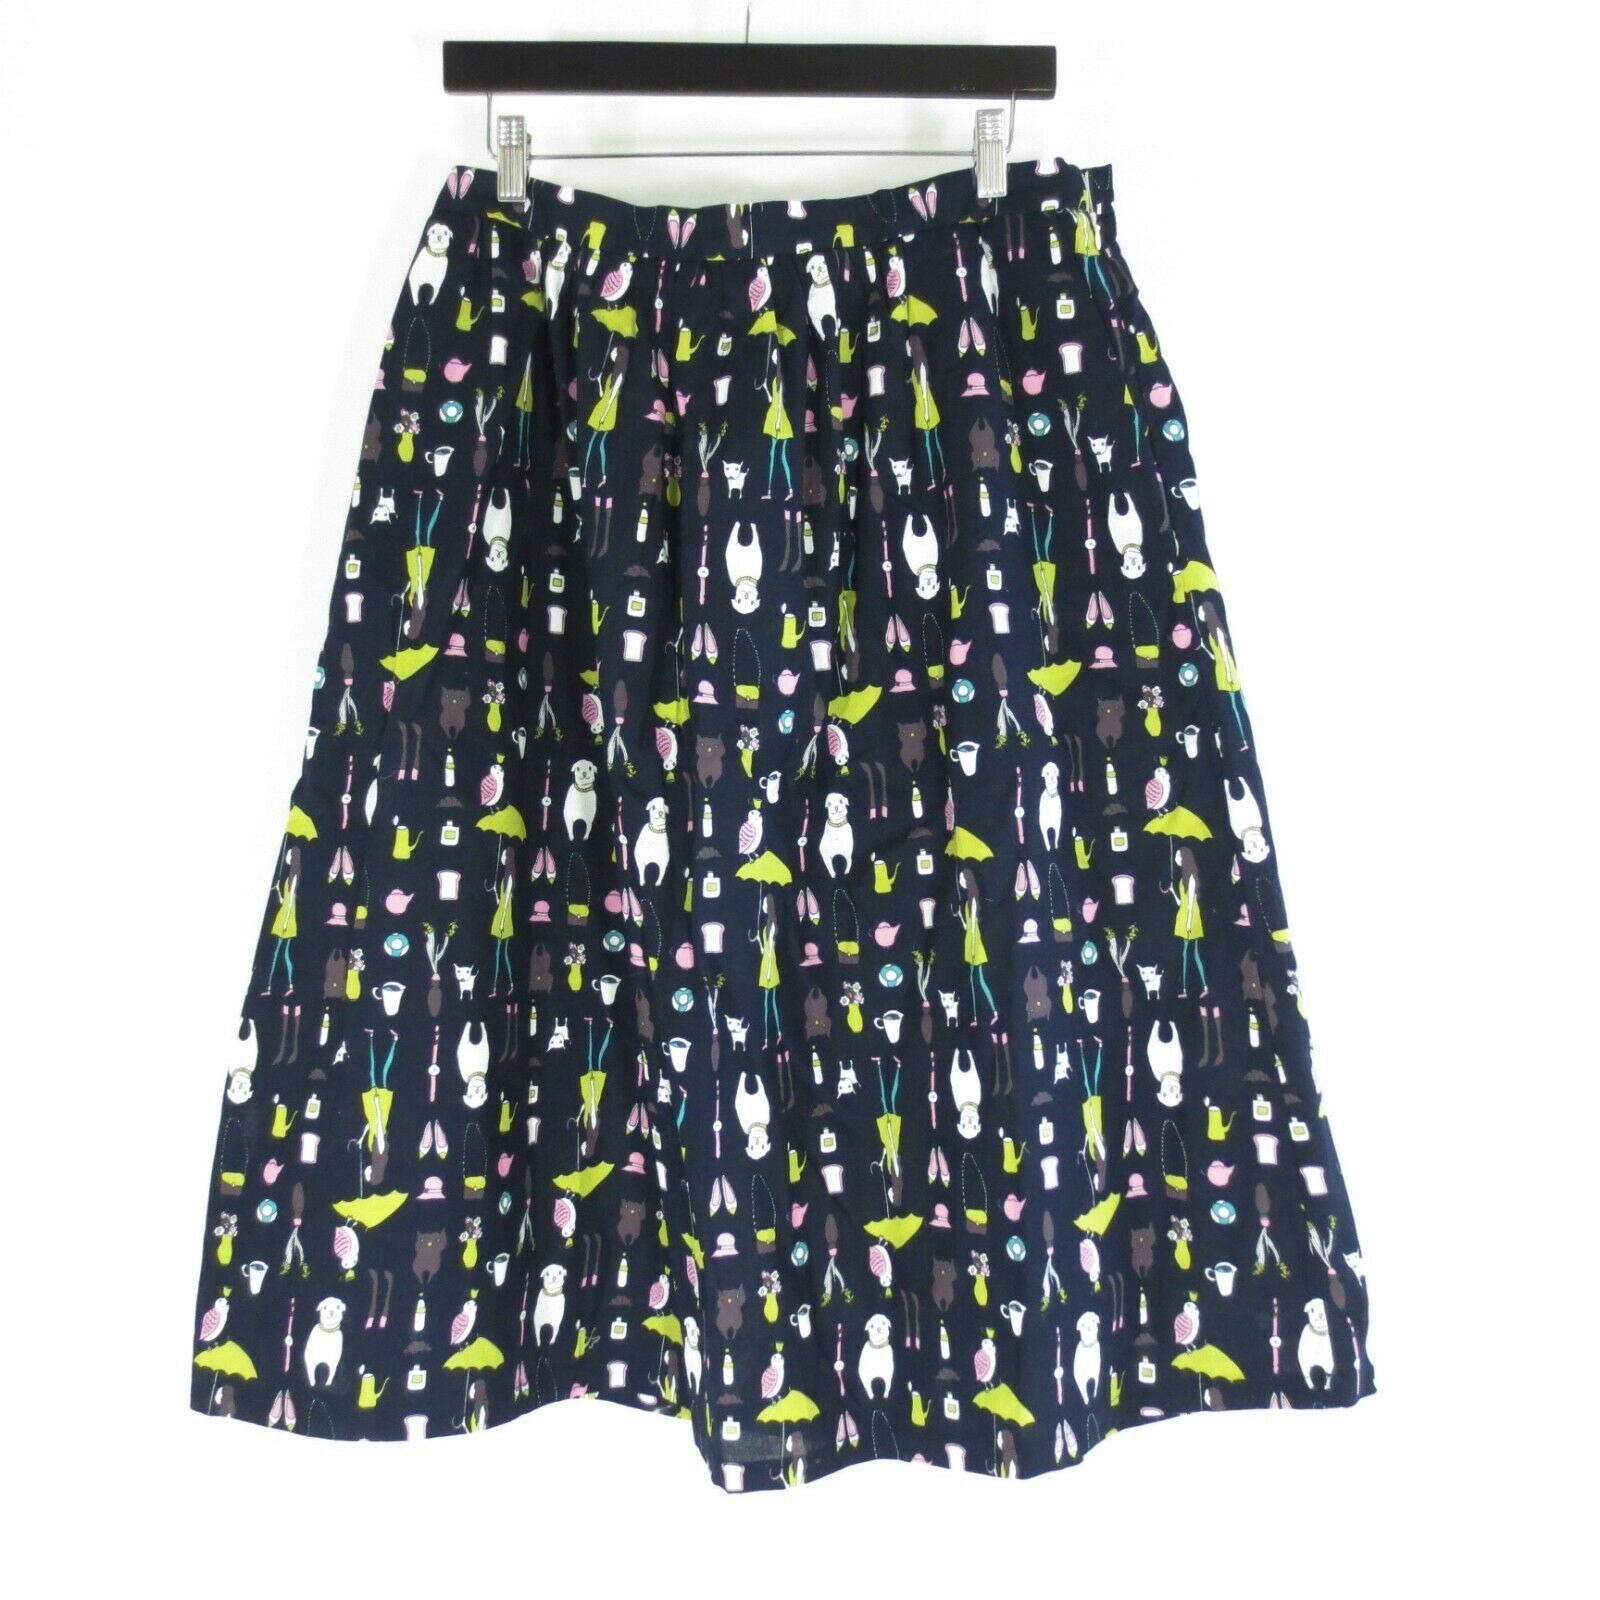 Primary image for XL - Frock Shop Womens Cute Black Retro Puppy Print Midi Cotton Skirt 1122CT